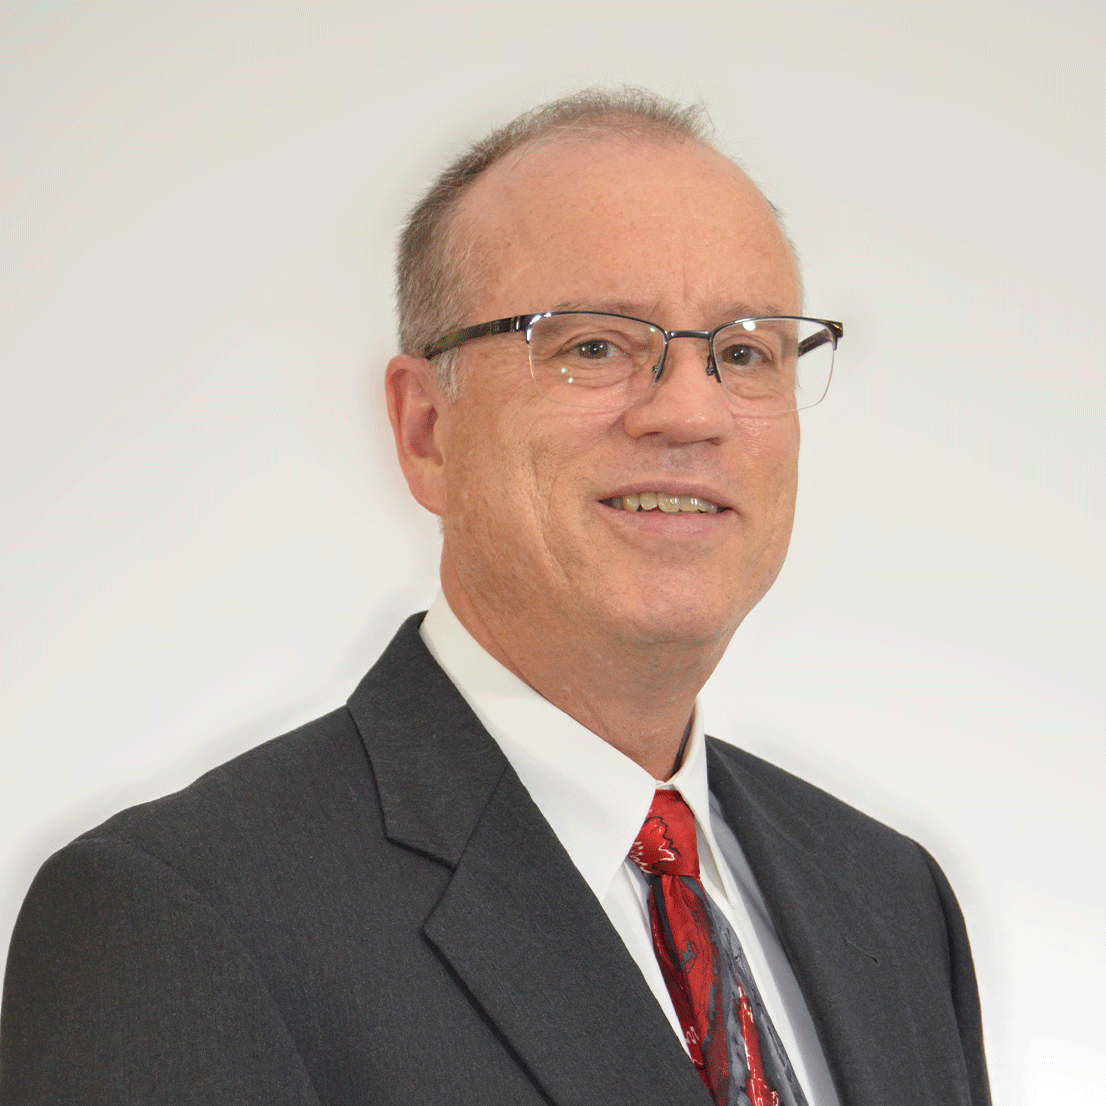 Donald Weese, Jr. MD